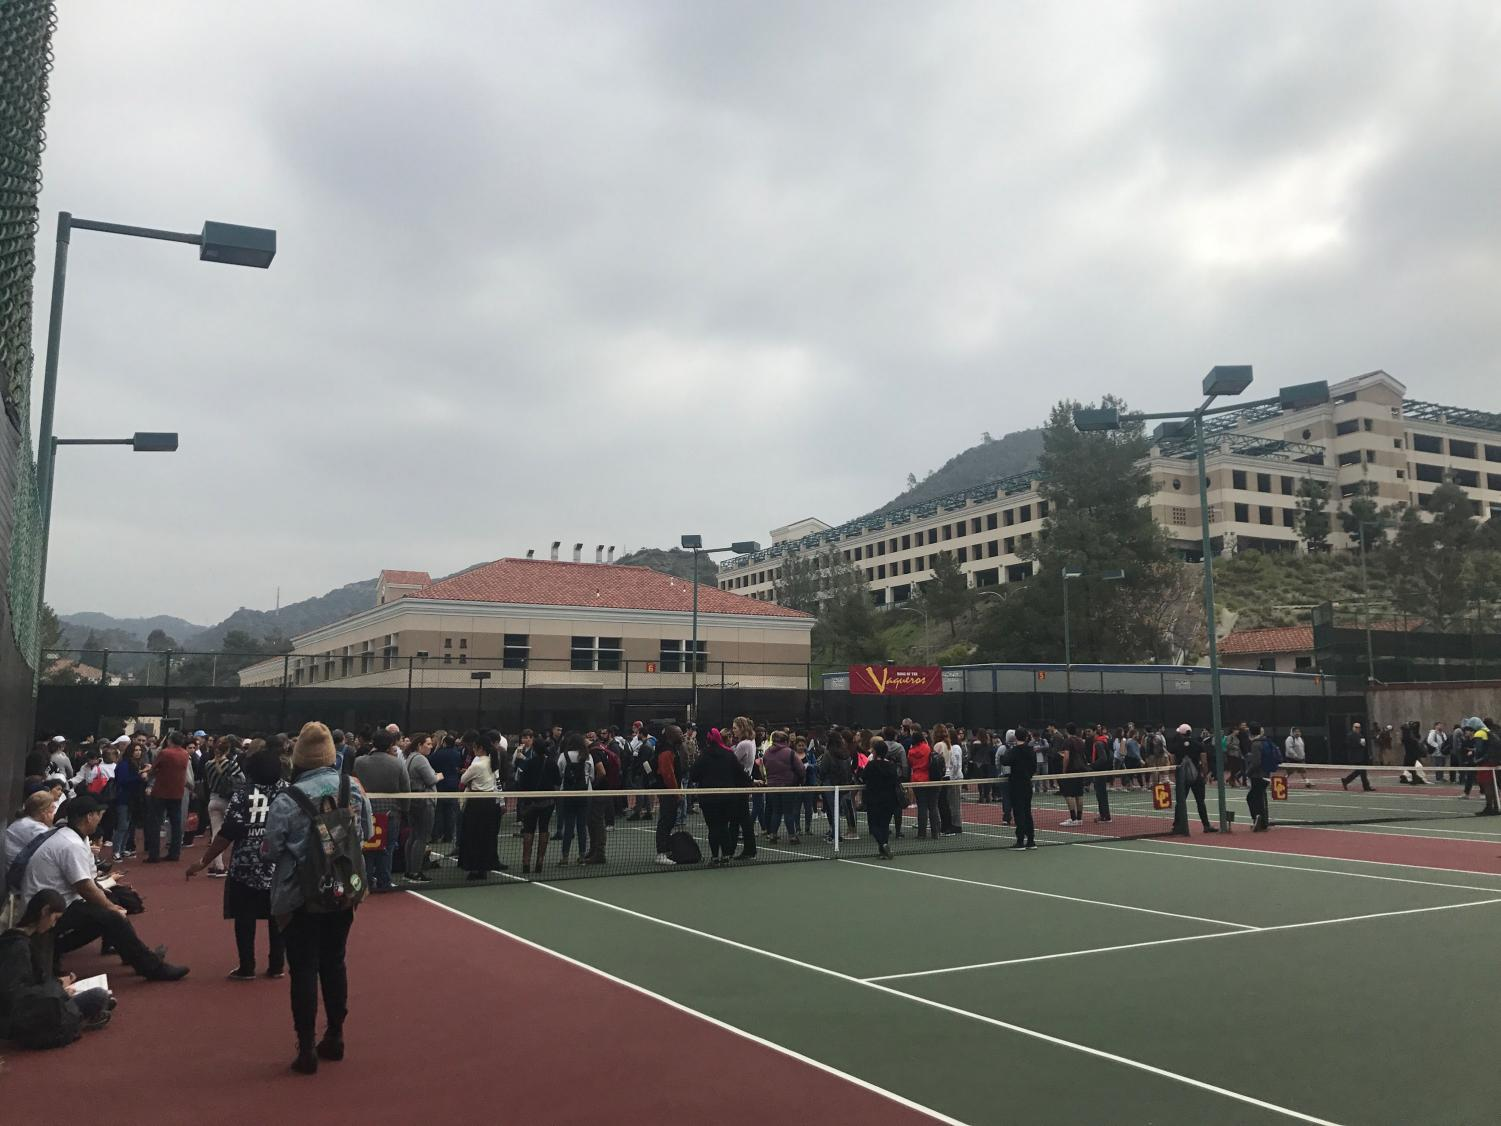 Students, staff and faculty gather at the GCC tennis court as part of the emergency fire drill on April 3.